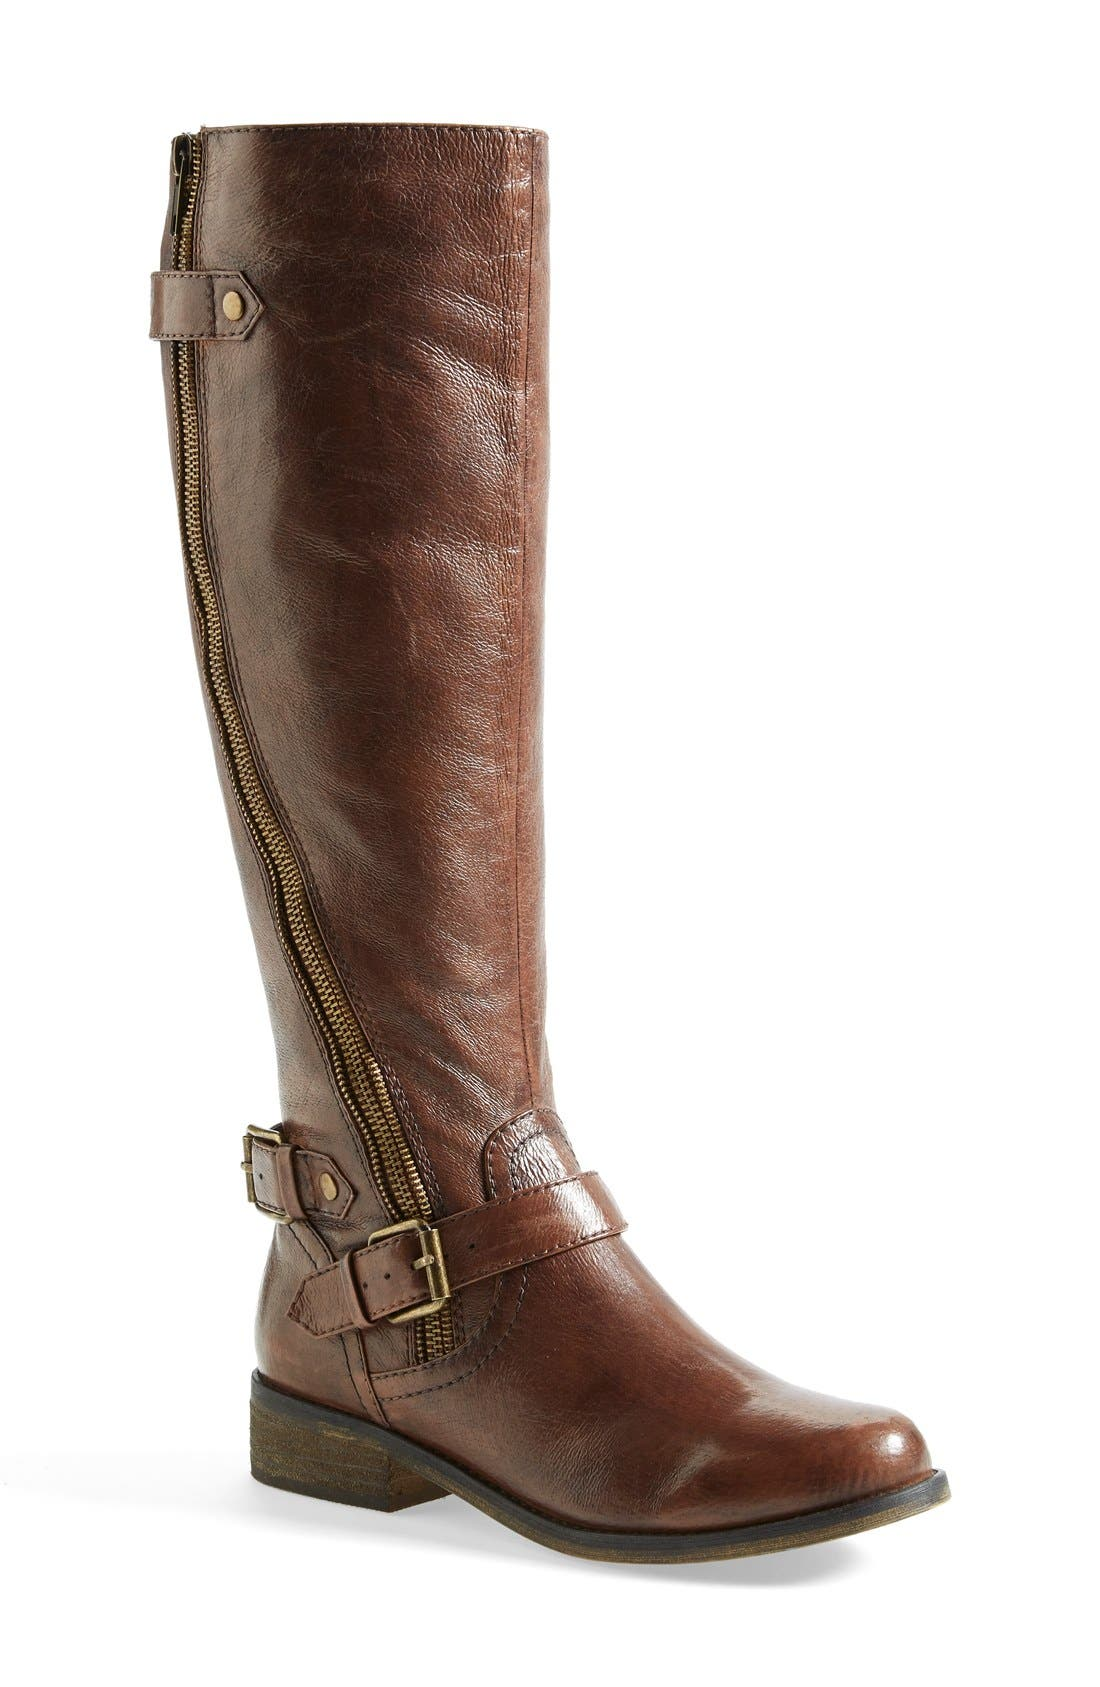 Main Image - Steve Madden 'Synicle' Riding Boot (Wide Calf) (Women)